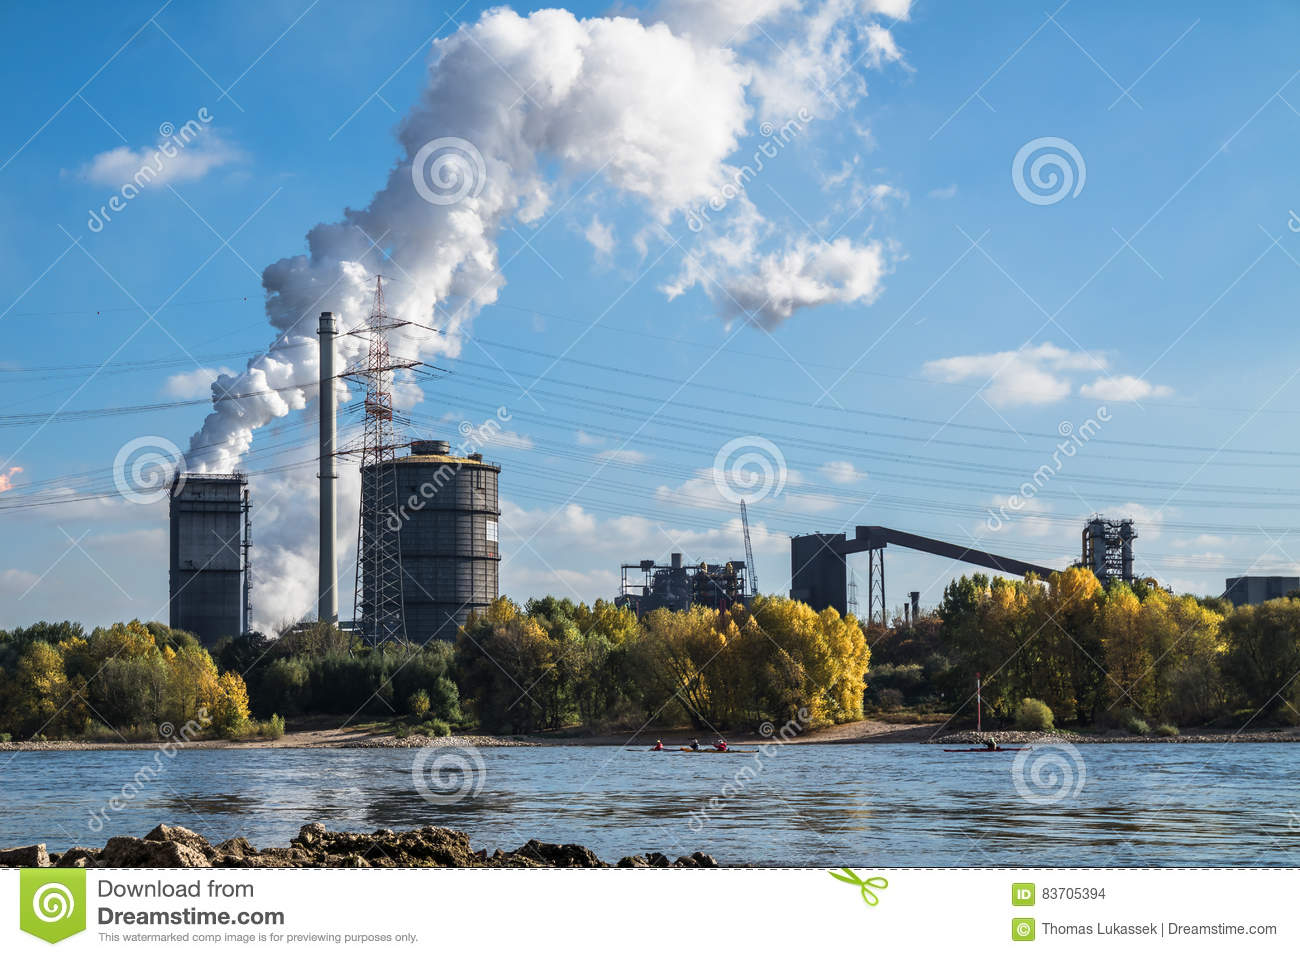 HKM Producing Steel Close To The River Rhine Stock Photo